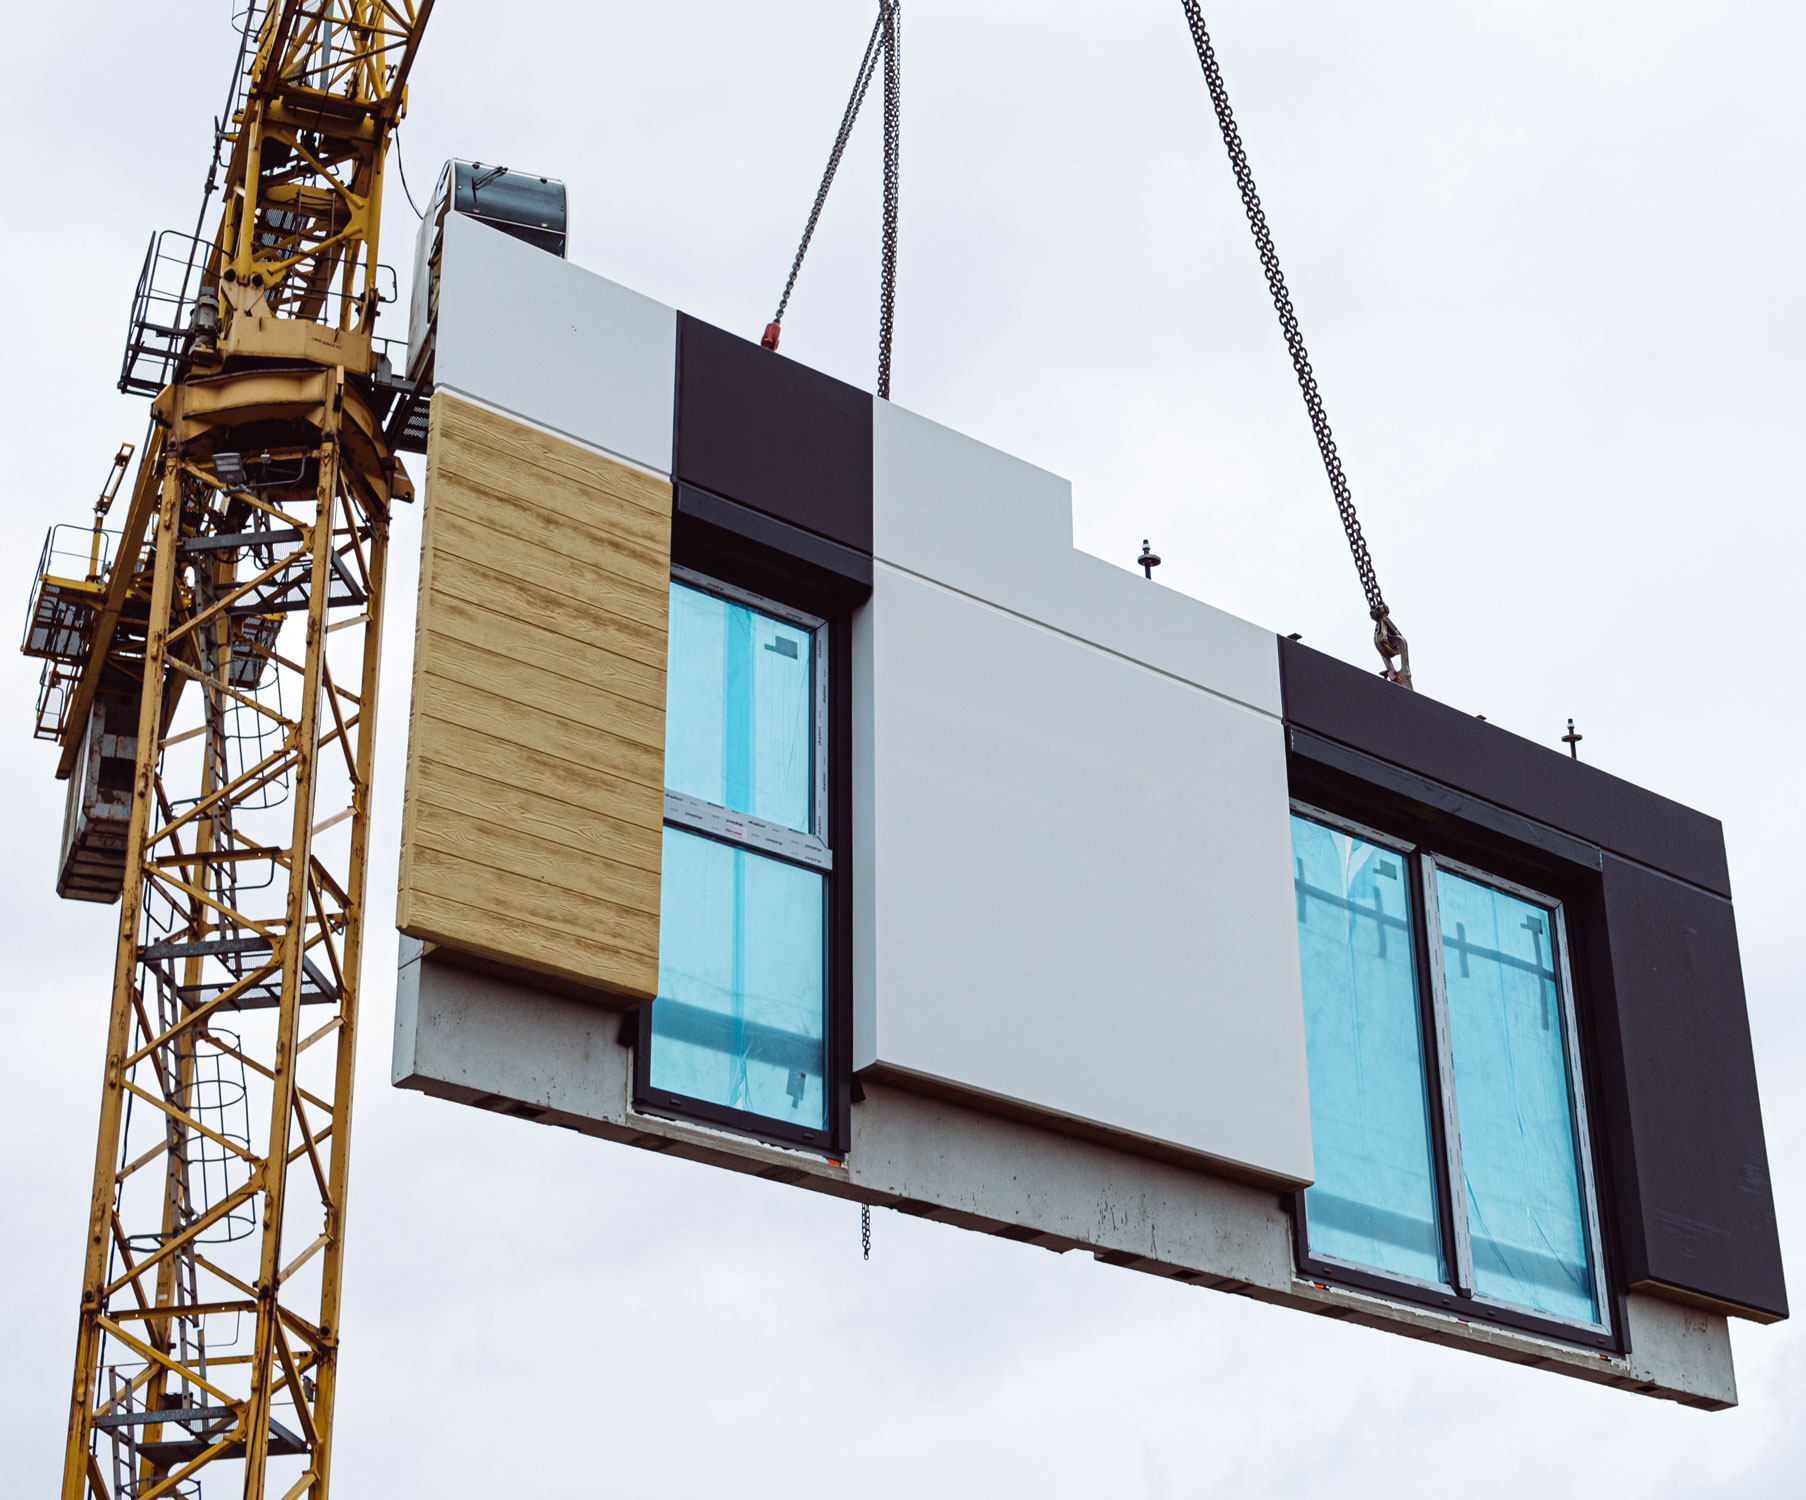 Prefabricated Building Materials & panelized commercial construction projects for green building time & money savings